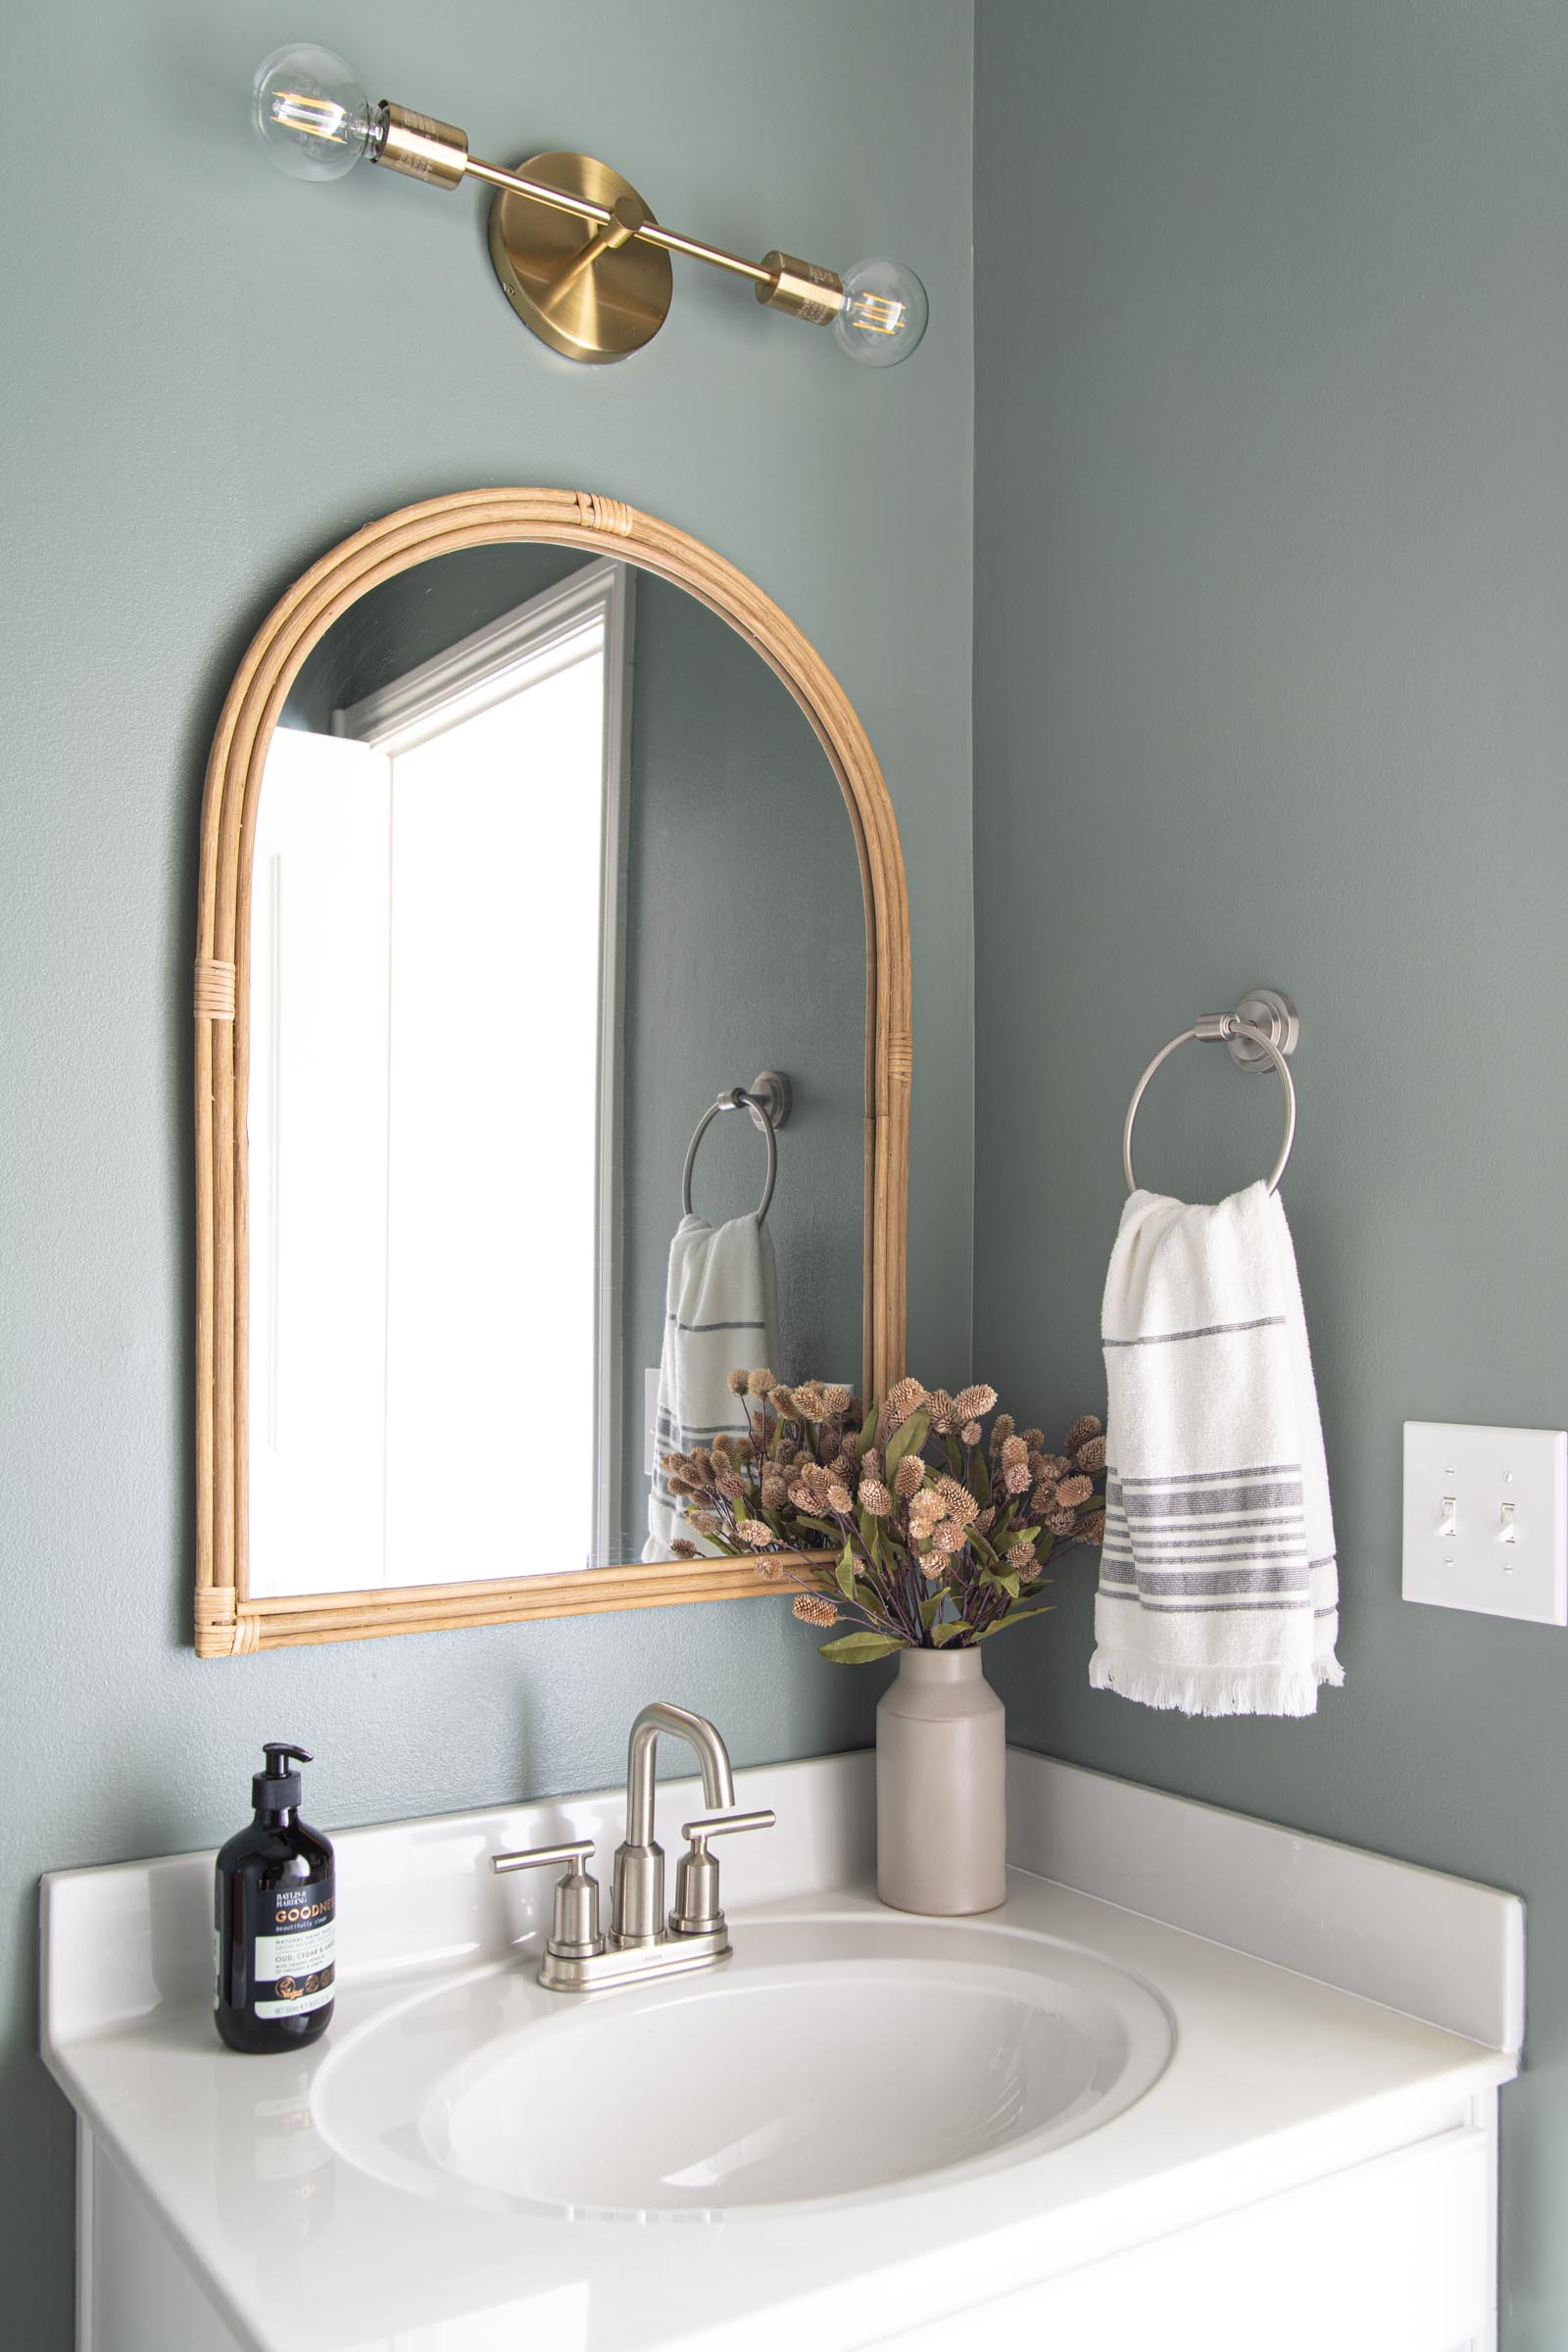 Budget Friendly Powder Room Reveal | muted green wall paint, arched rattan mirror, vintage landscape art, leather tissue box cover, dried florals, modern bathroom faucet